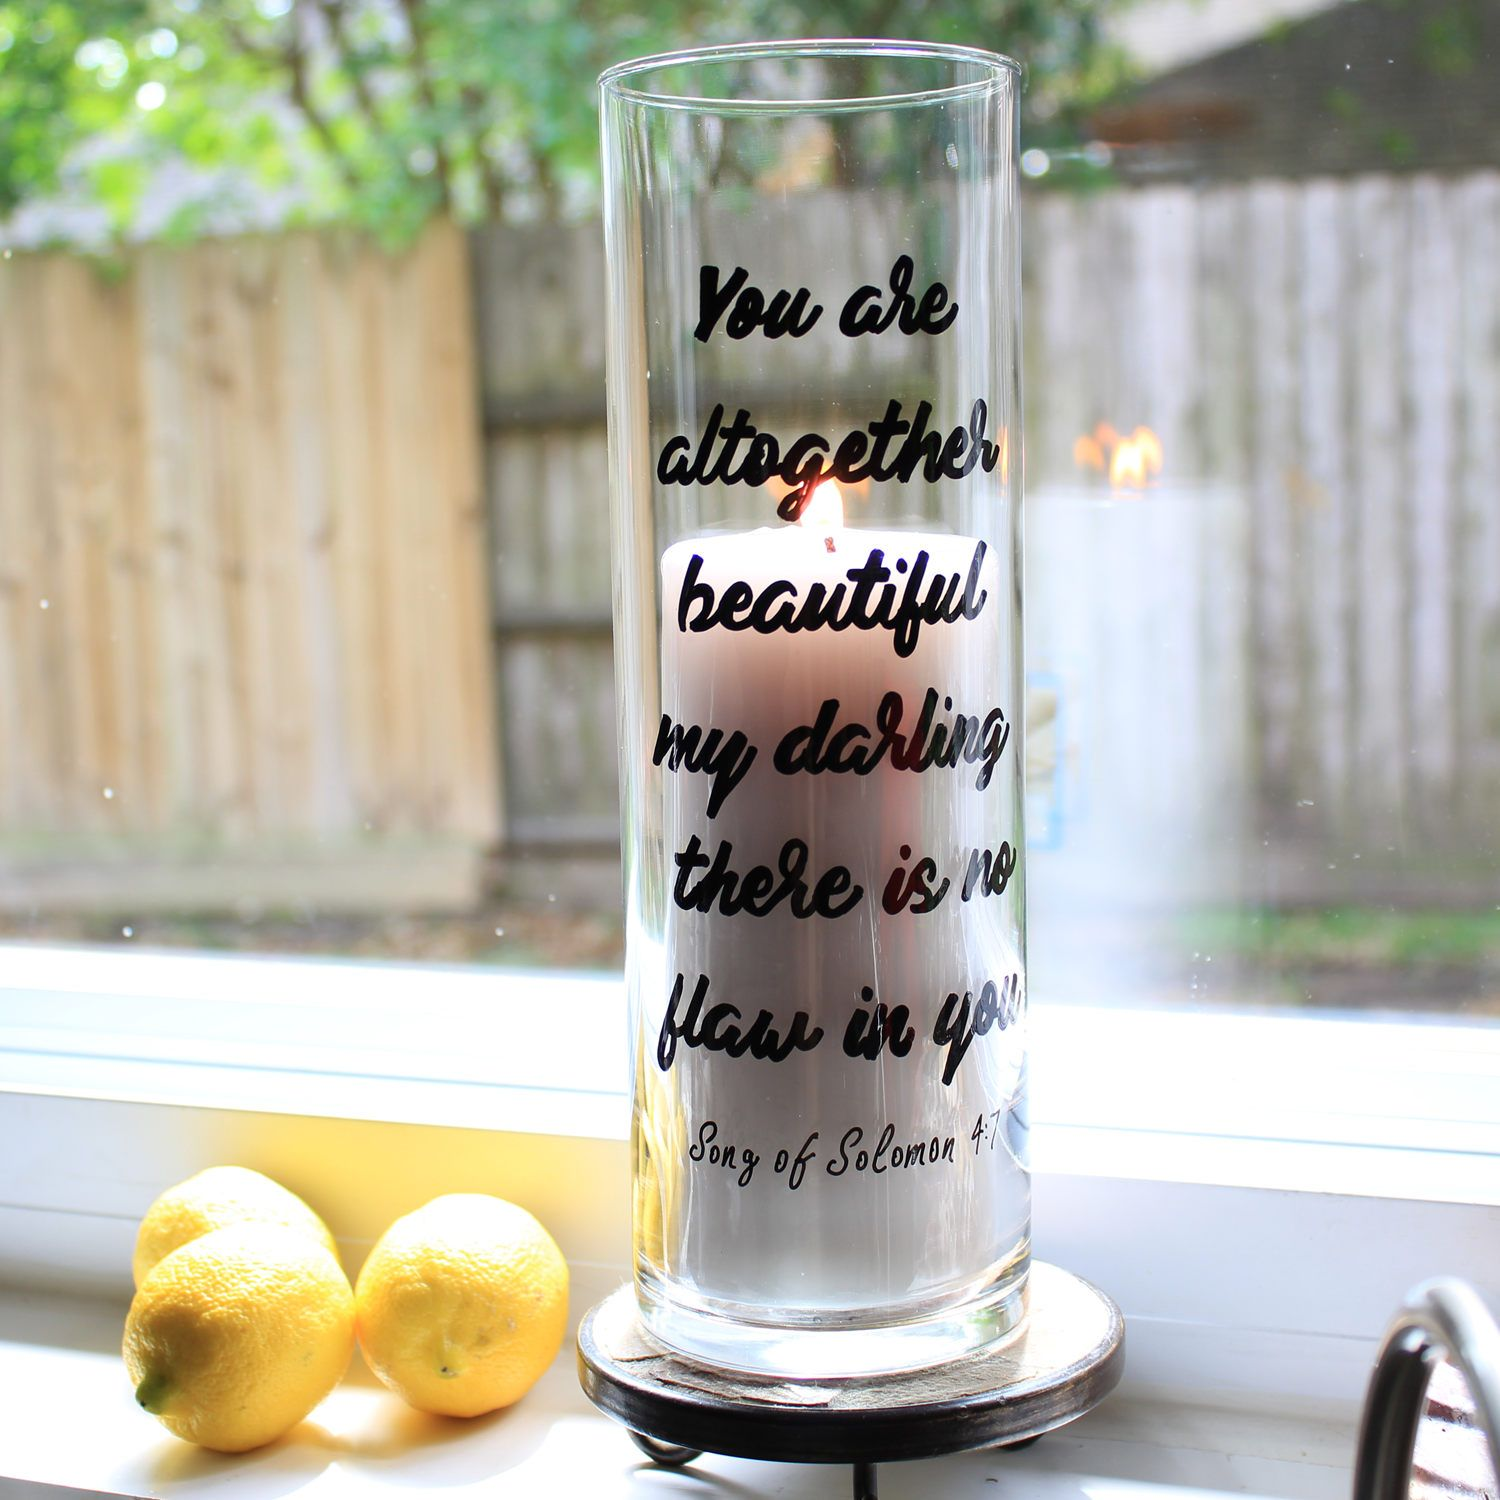 Christian Gifts For Women Flower Vase Candle Holder Song Of Songs Bible Verse Religious Gift Anniversary Birthday Her By